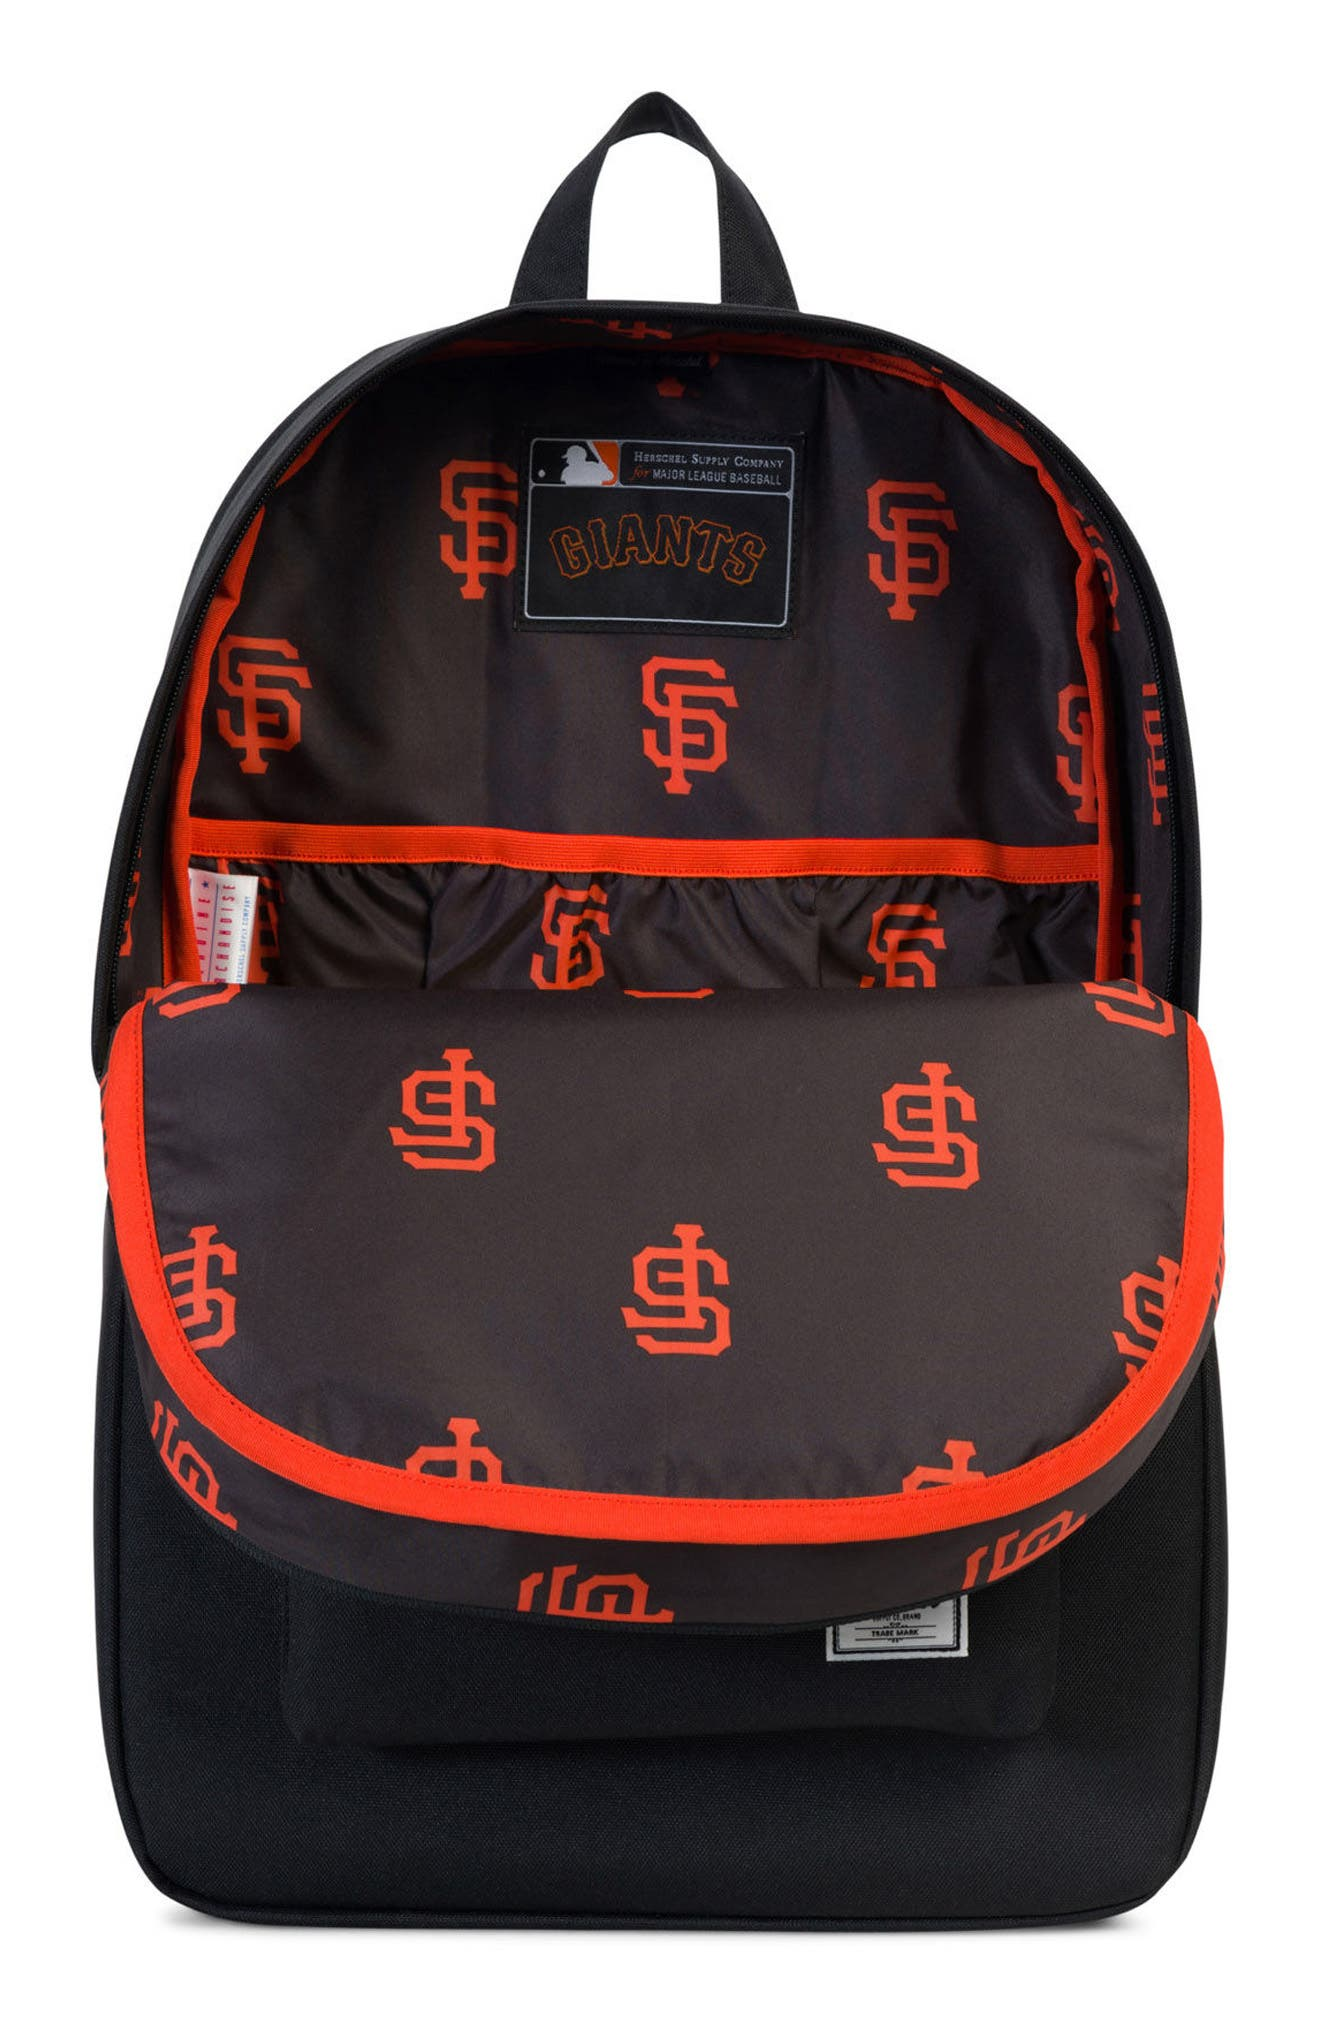 Heritage San Francisco Giants Backpack,                             Alternate thumbnail 3, color,                             San Francisco Giants